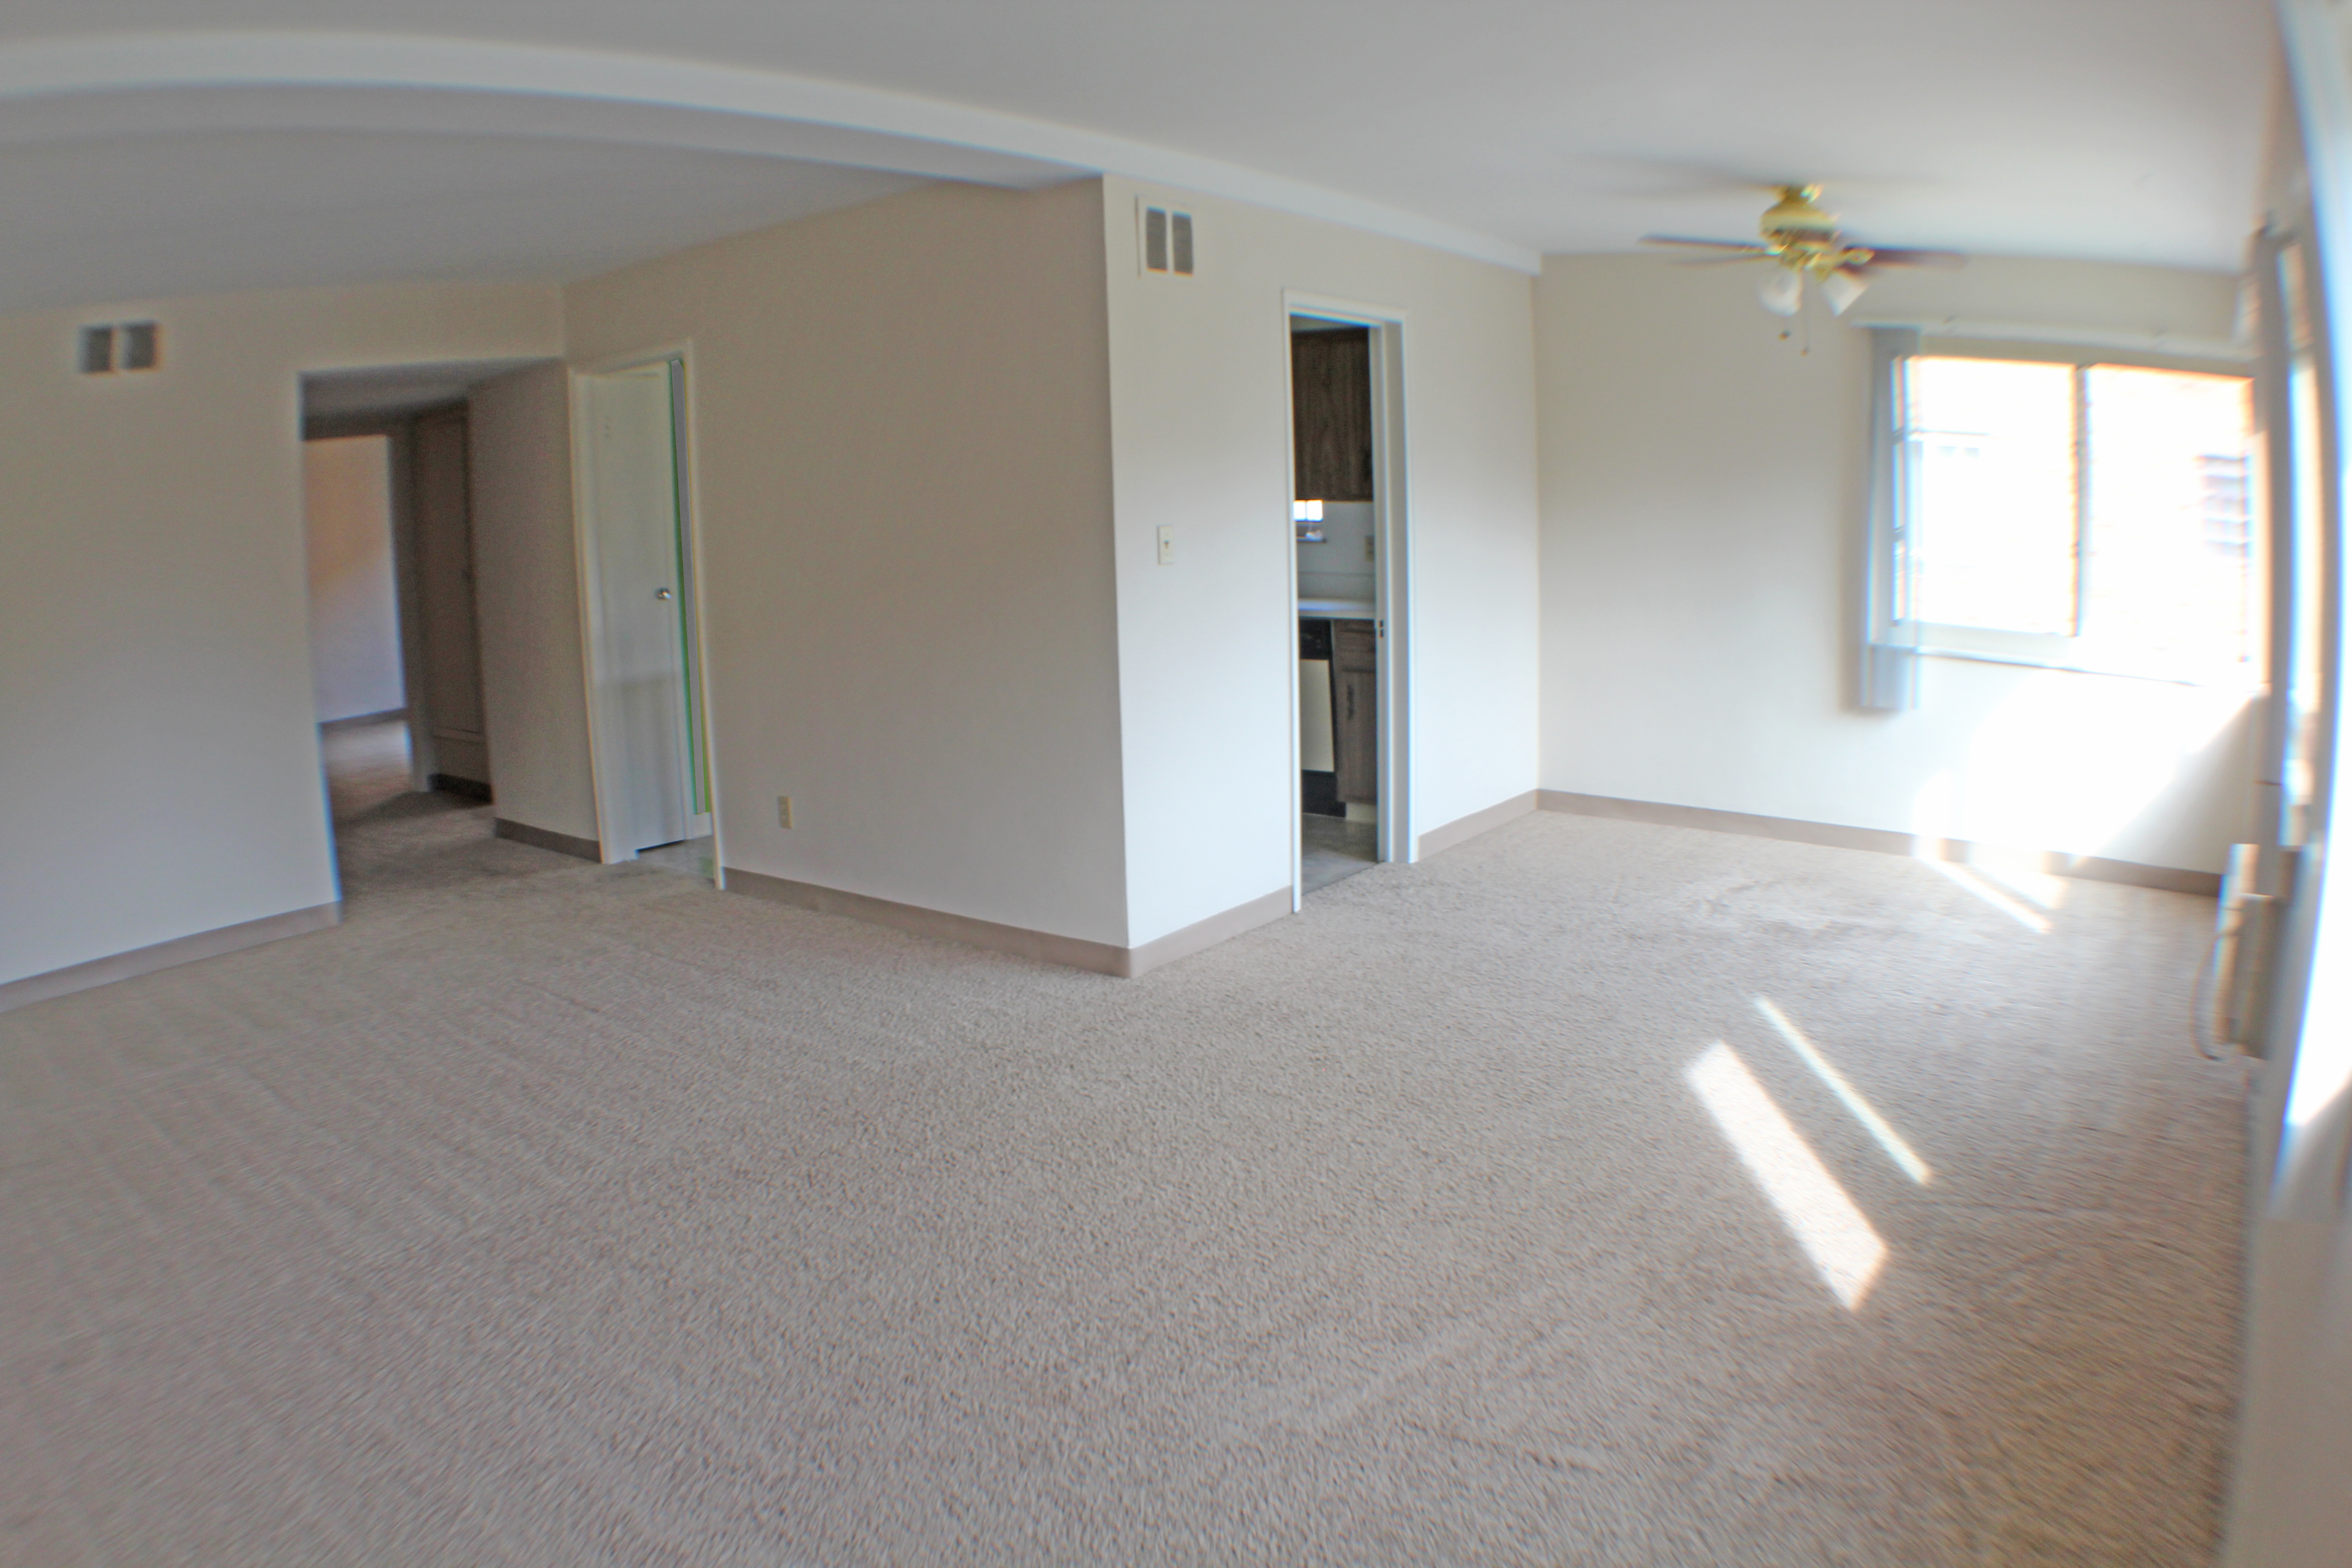 Highland House Apartments in Lakewood, OH - Apartment For Rent